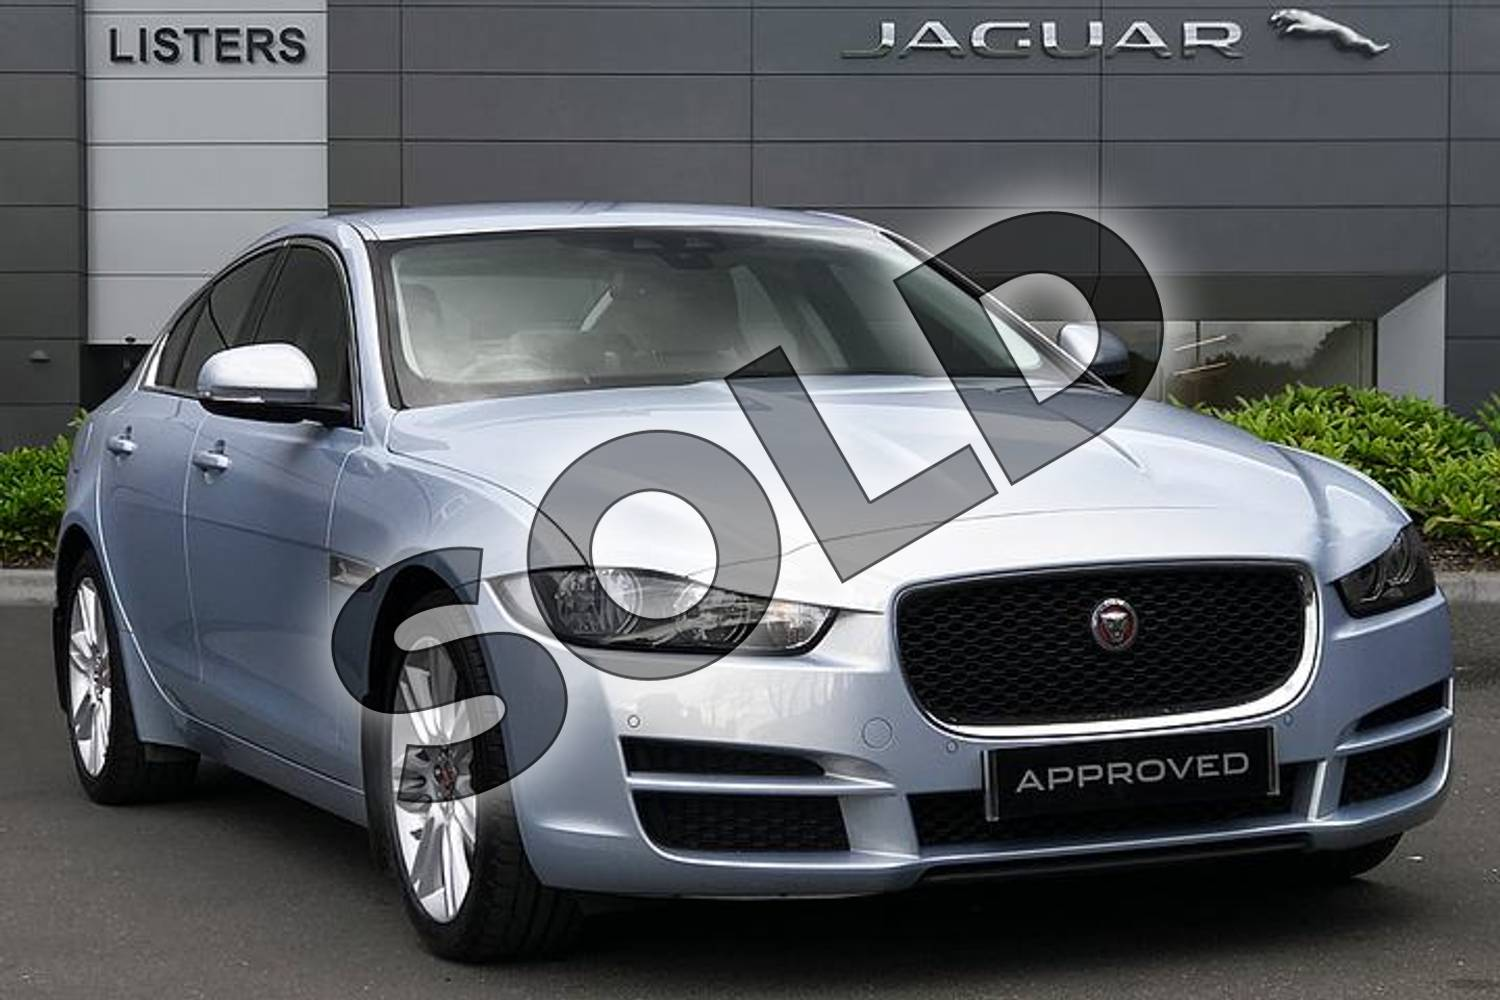 2016 Jaguar XE 2.0 i4 Diesel (180PS) Prestige in Osmium at Listers Jaguar Droitwich